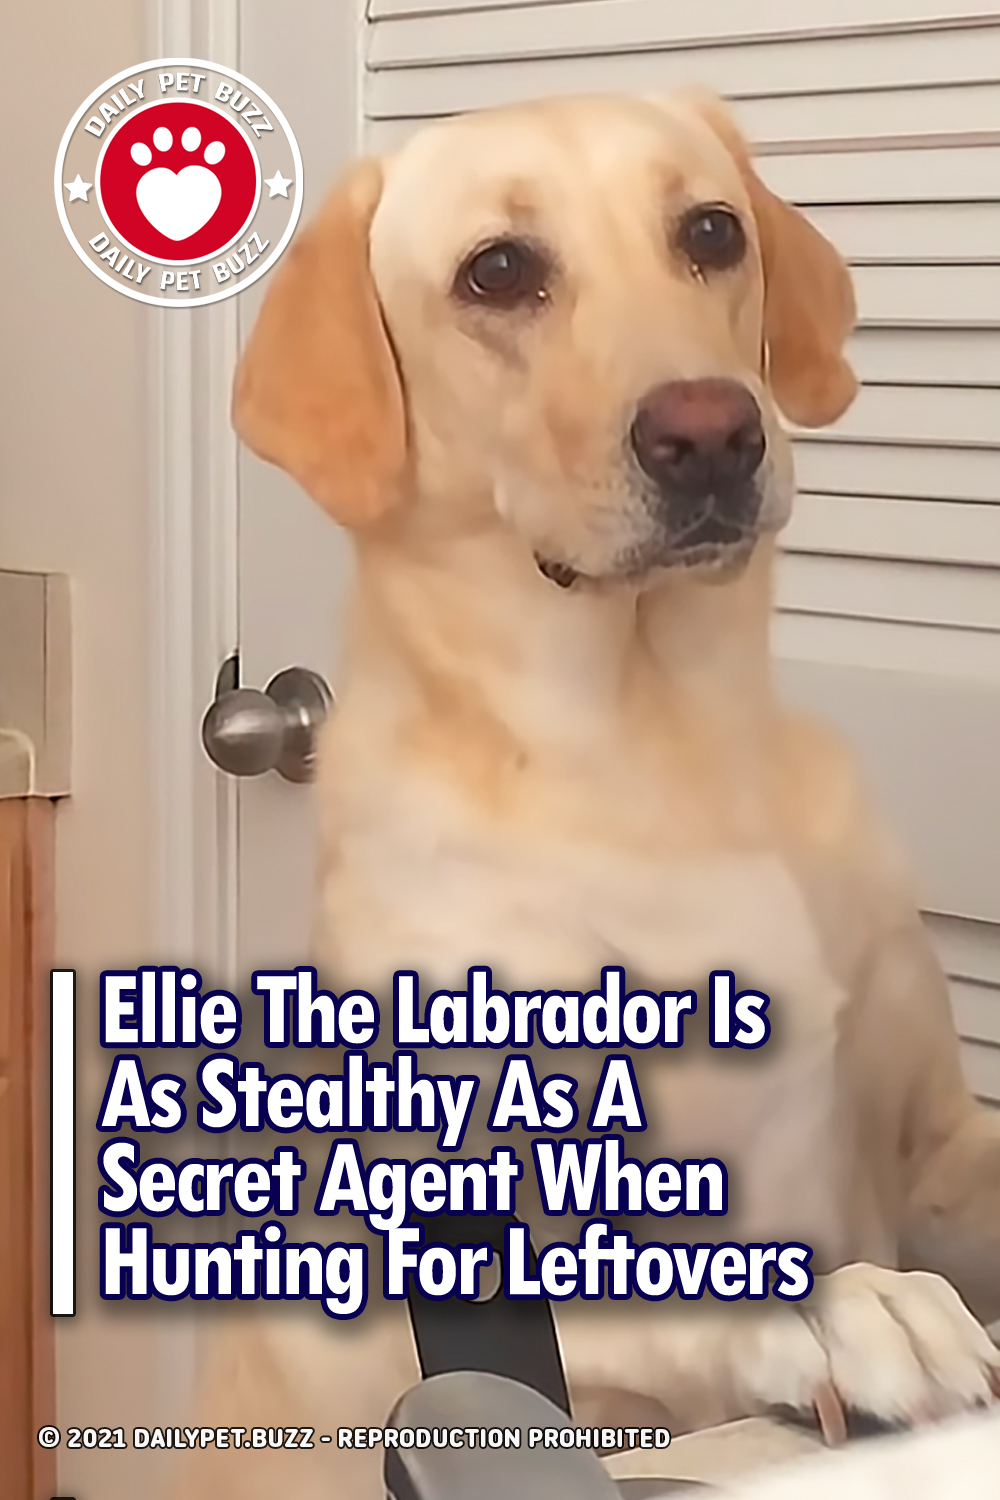 Ellie The Labrador Is As Stealthy As A Secret Agent When Hunting For Leftovers